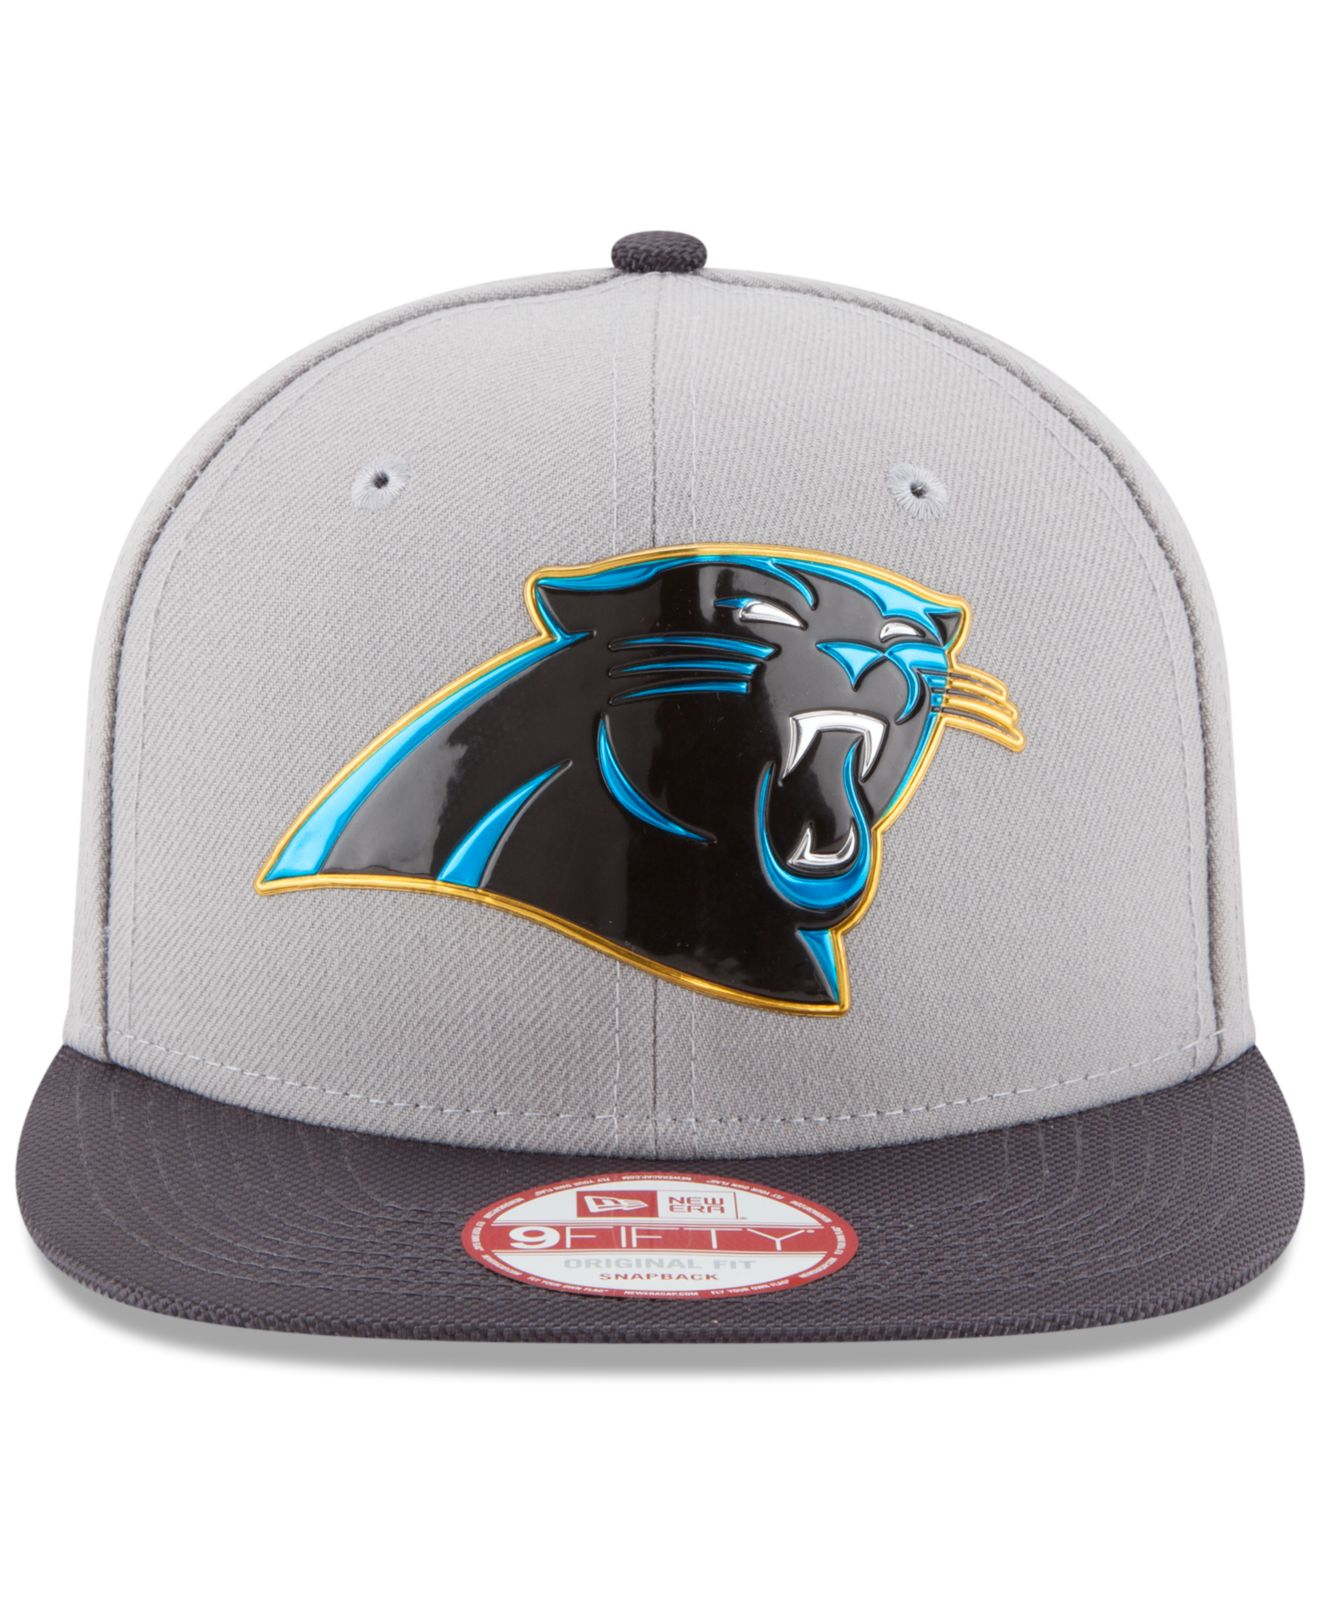 Lyst - KTZ Carolina Panthers Gold Collection 9fifty Snapback Cap in ... f7c3d7c47